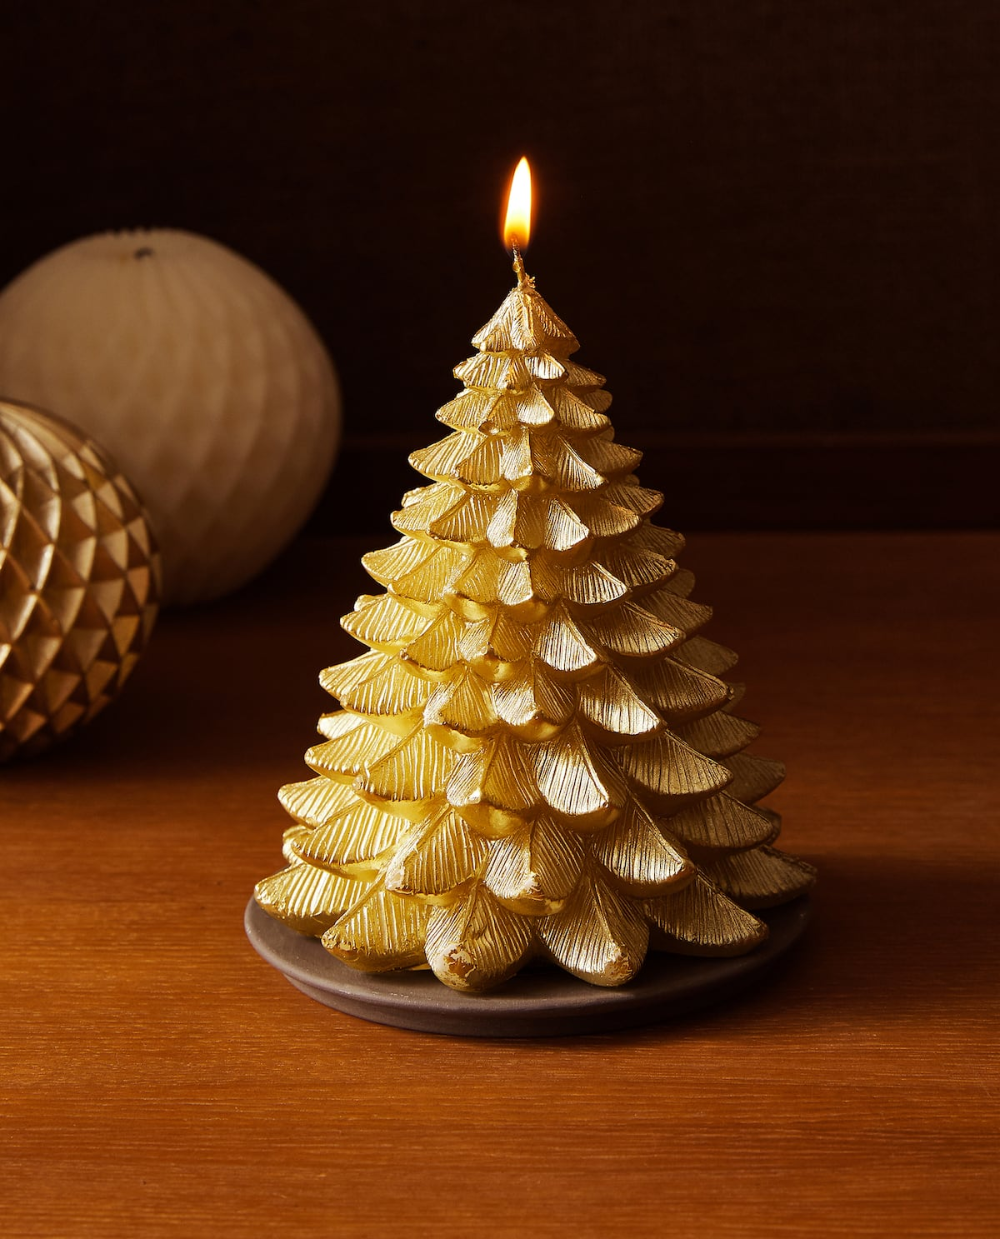 Image 6 Of The Product Christmas Tree Candle In 2020 Christmas Tree Candles Candle Decor Candle Tree